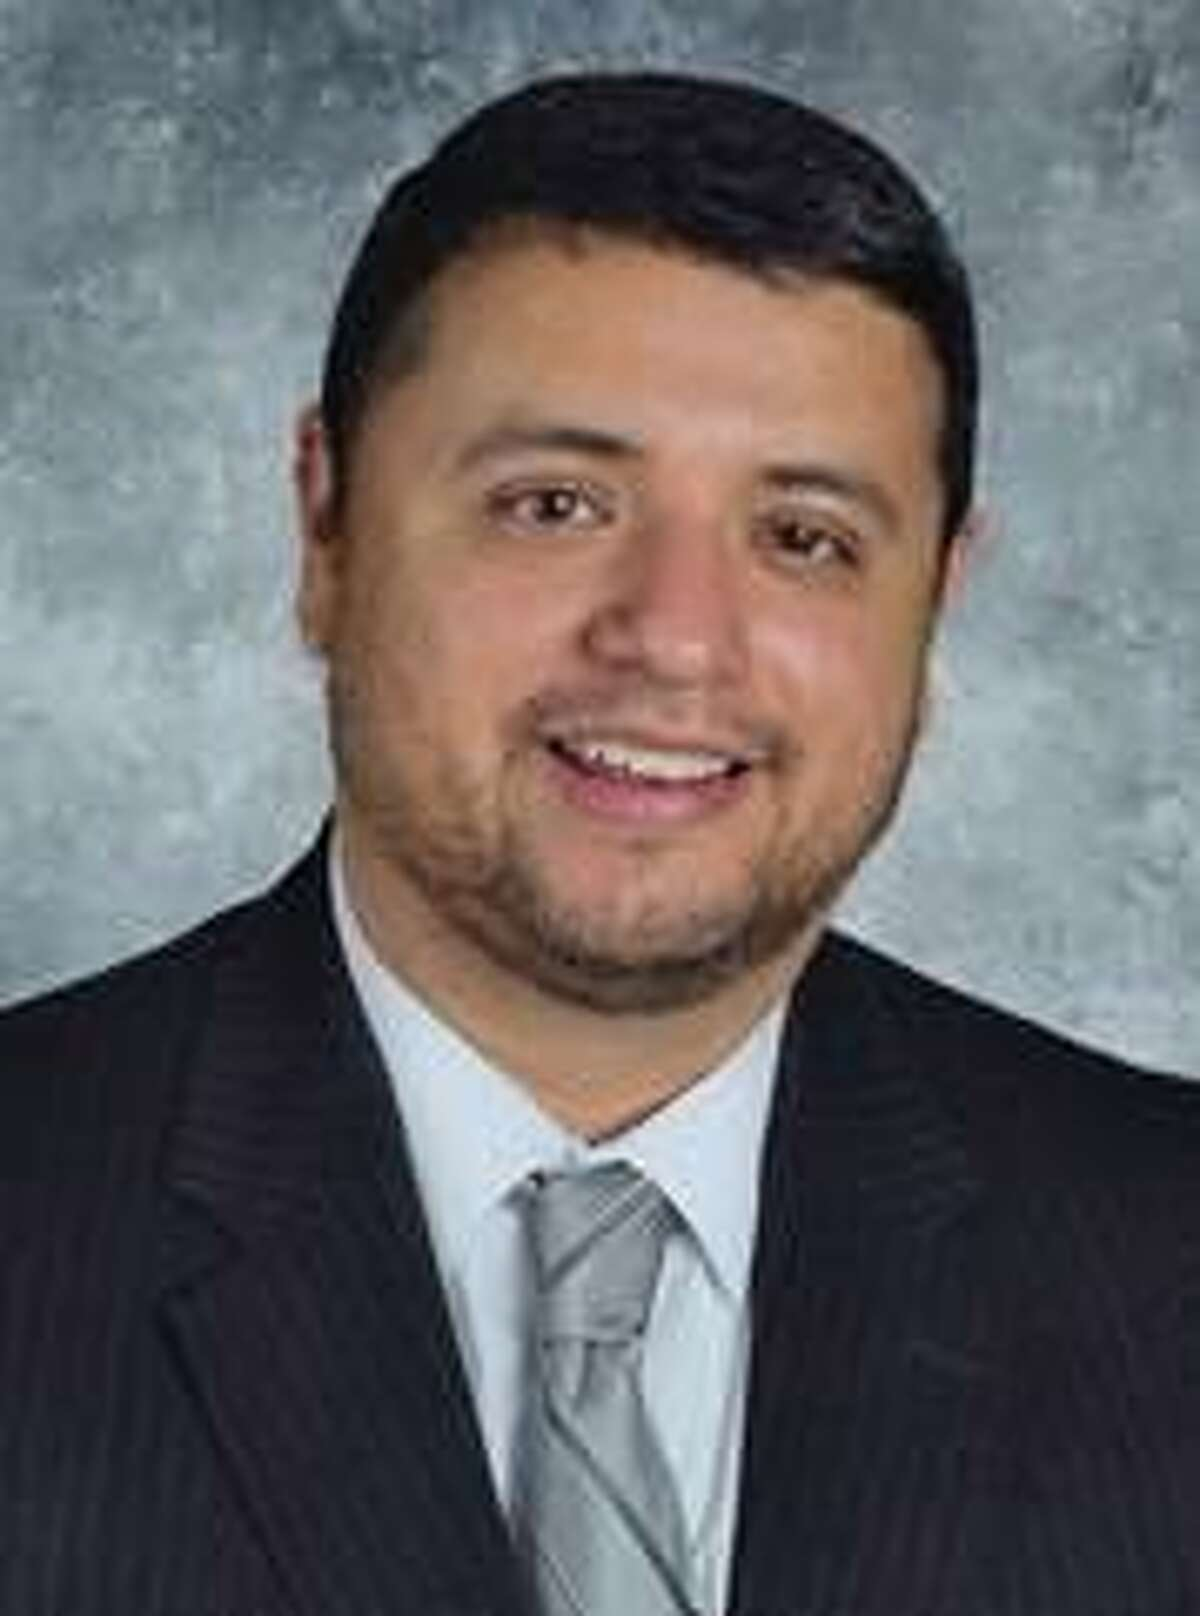 David Paz has spent 19 years with Katy Independent School District and on Monday, Nov. 9, was appointed as principal of Bill and Cindy Haskett Junior High. The district's 17th junior high is slated to open in fall 2021.